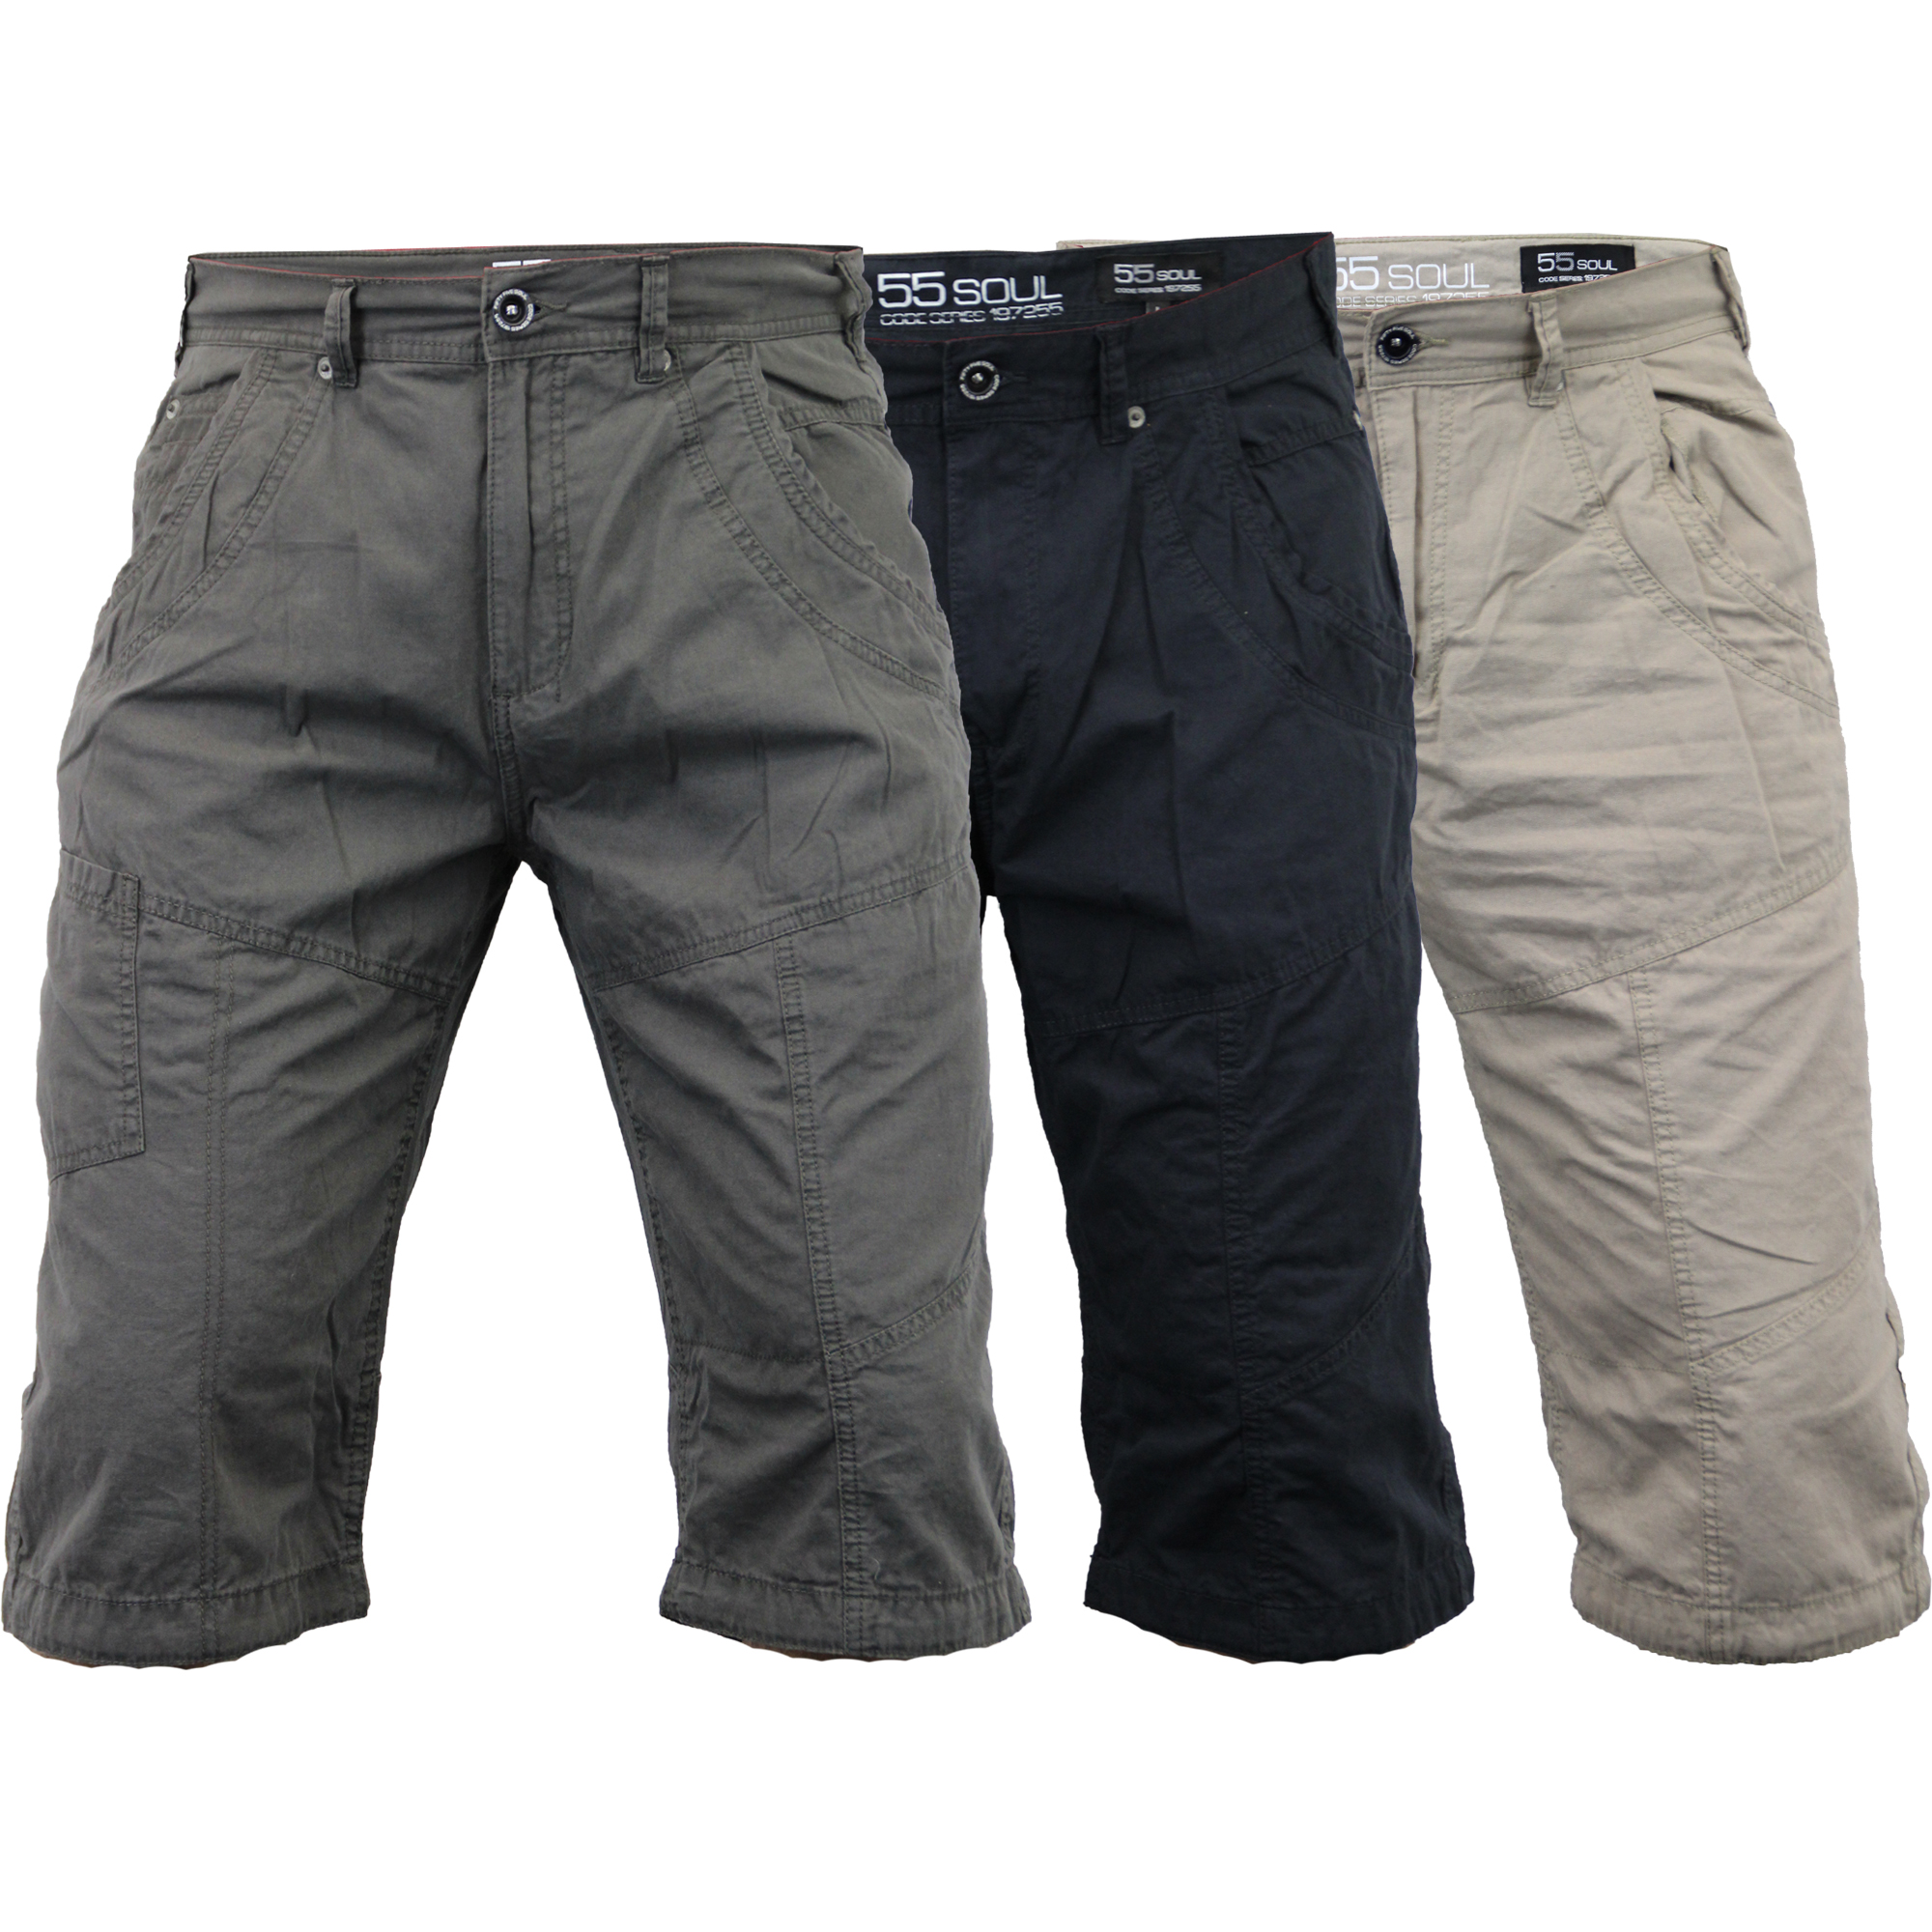 Mens Shorts 55 Soul Chino Style Bottoms Knee Length Half Pants ...